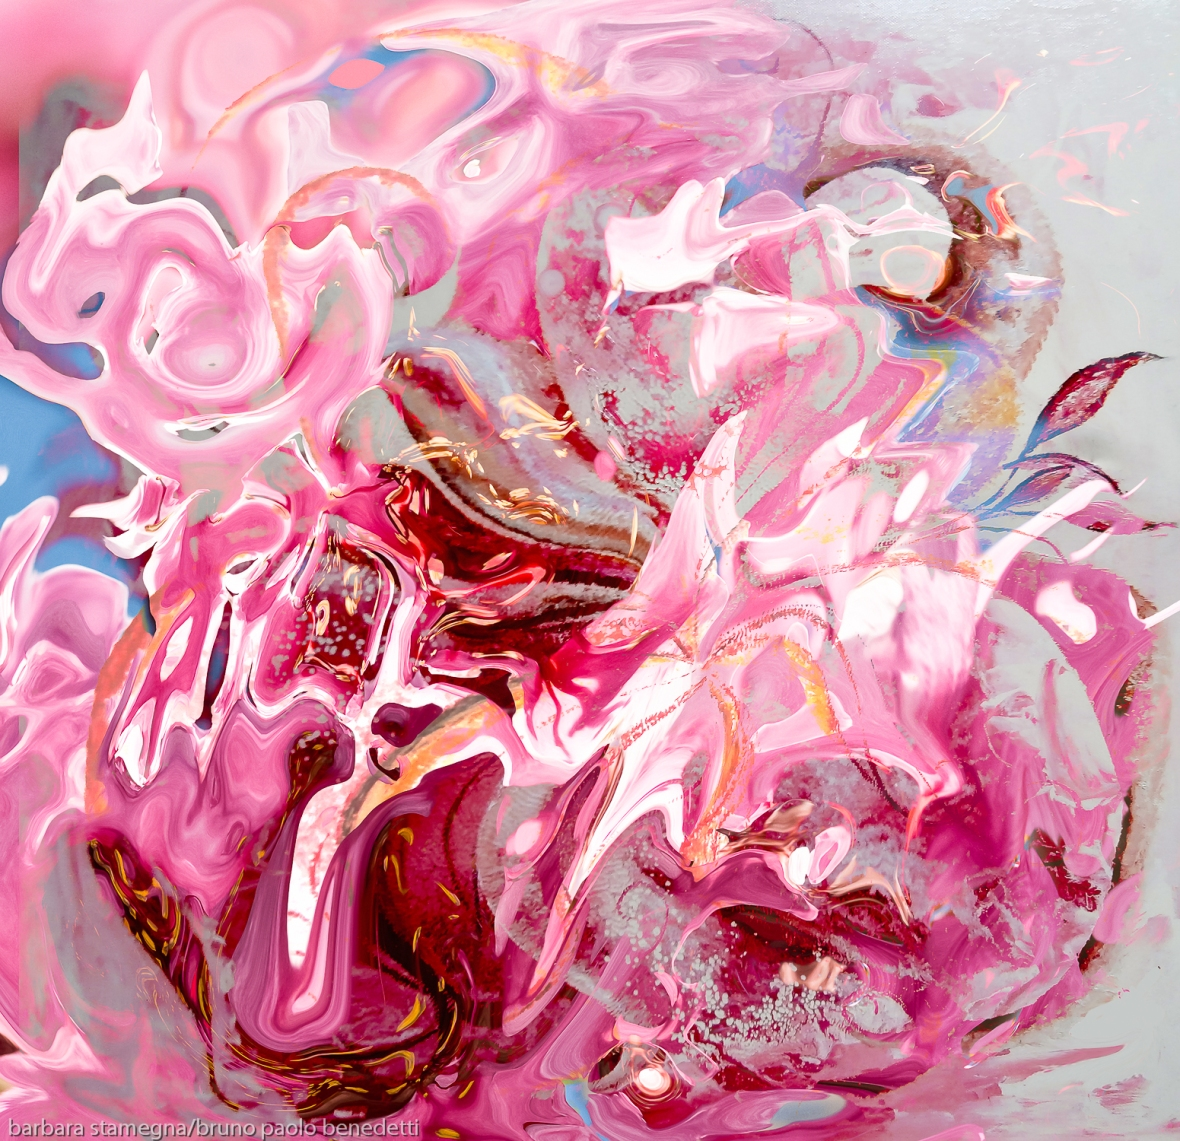 floral pink abstract flower like image in pink tones with shades